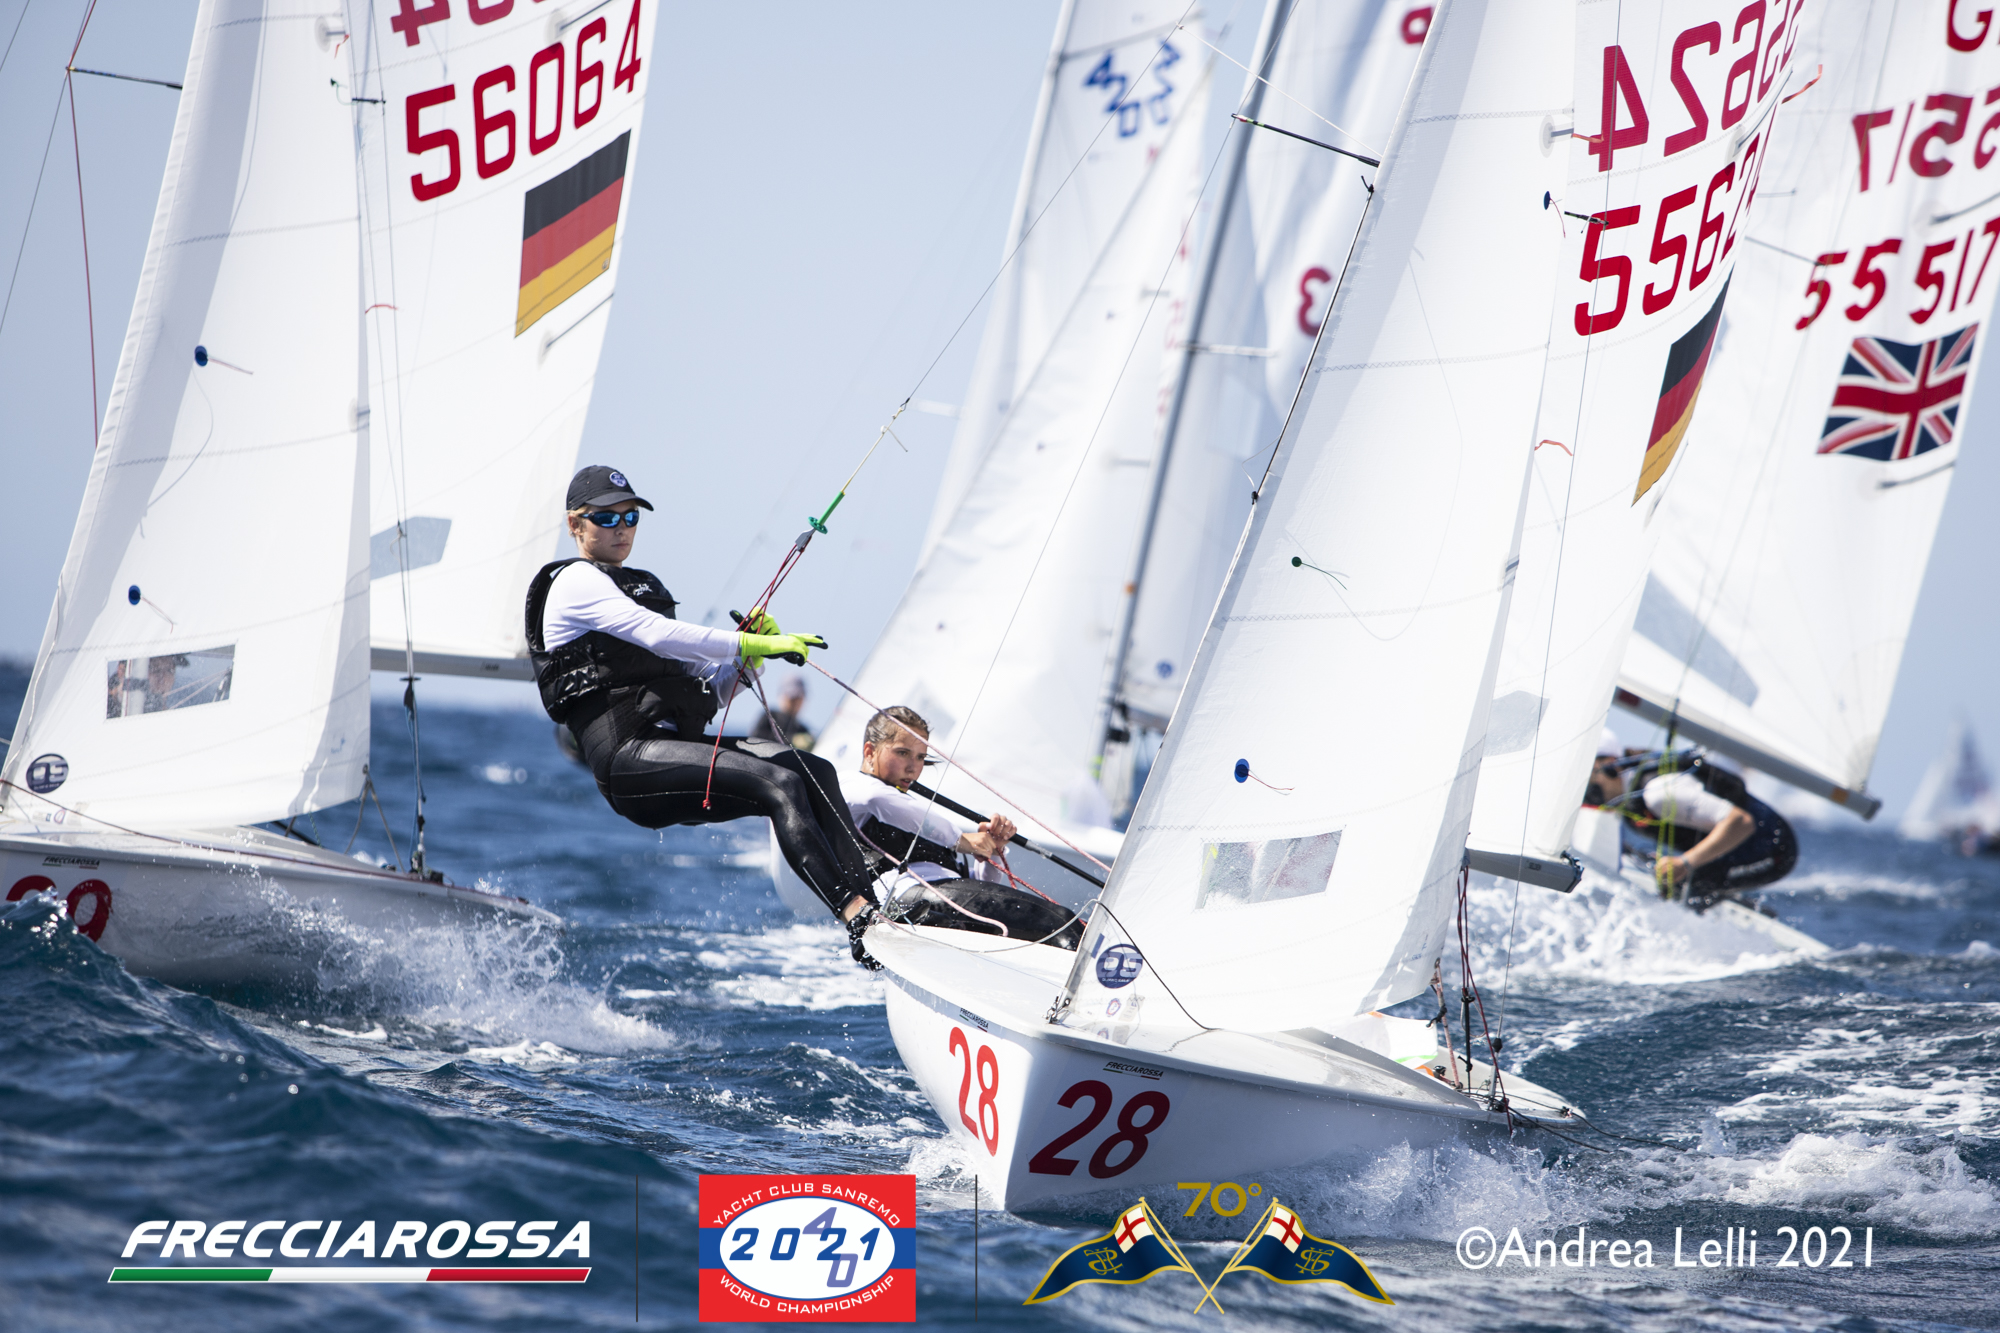 Great wind allowed the racing to start at the 2021 420 Worlds in Sanremo